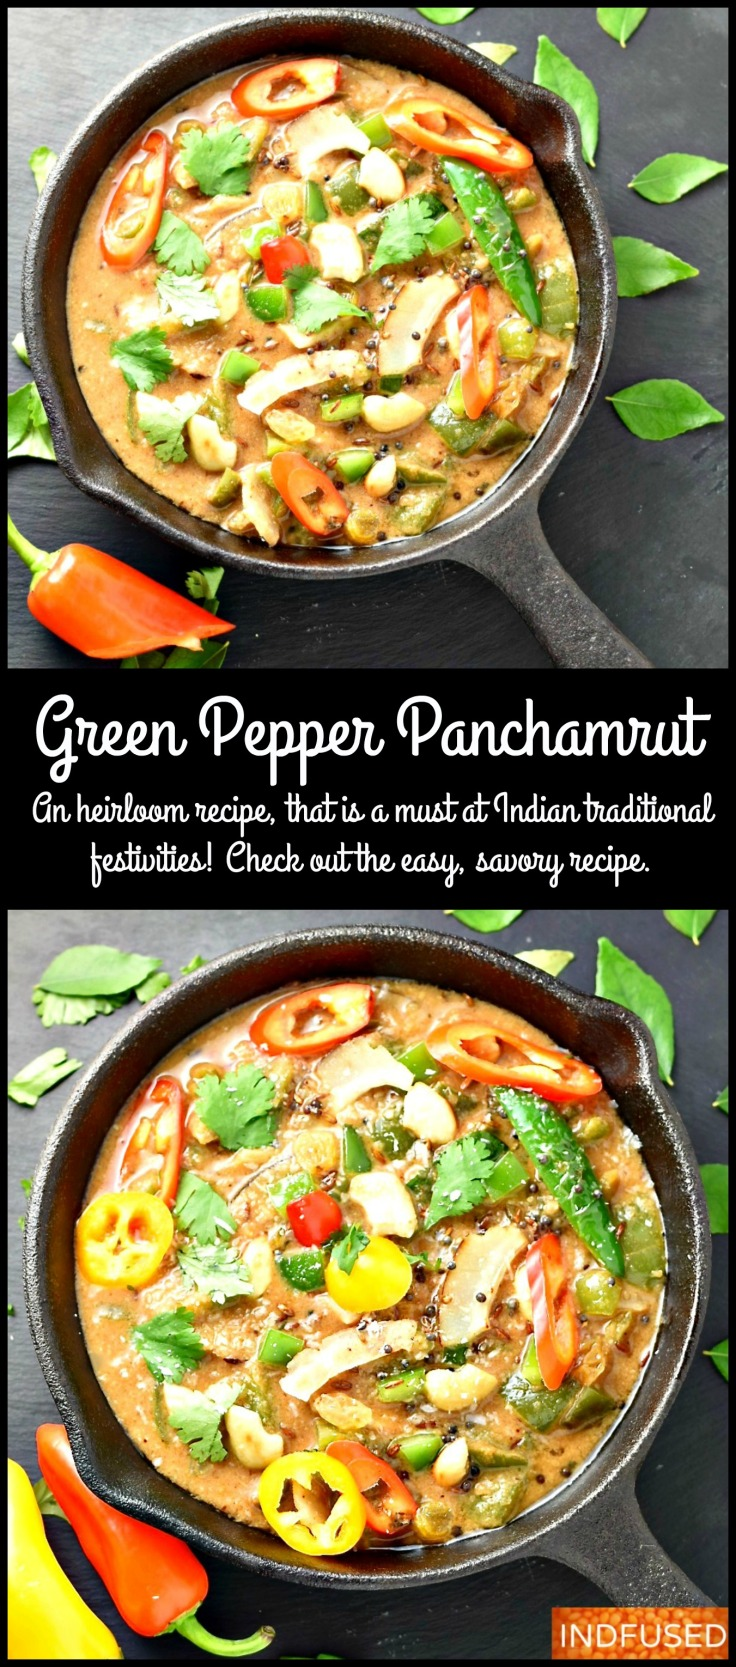 Green Pepper Panchamrut- a traditional savory dish which is a must for Indian festivities